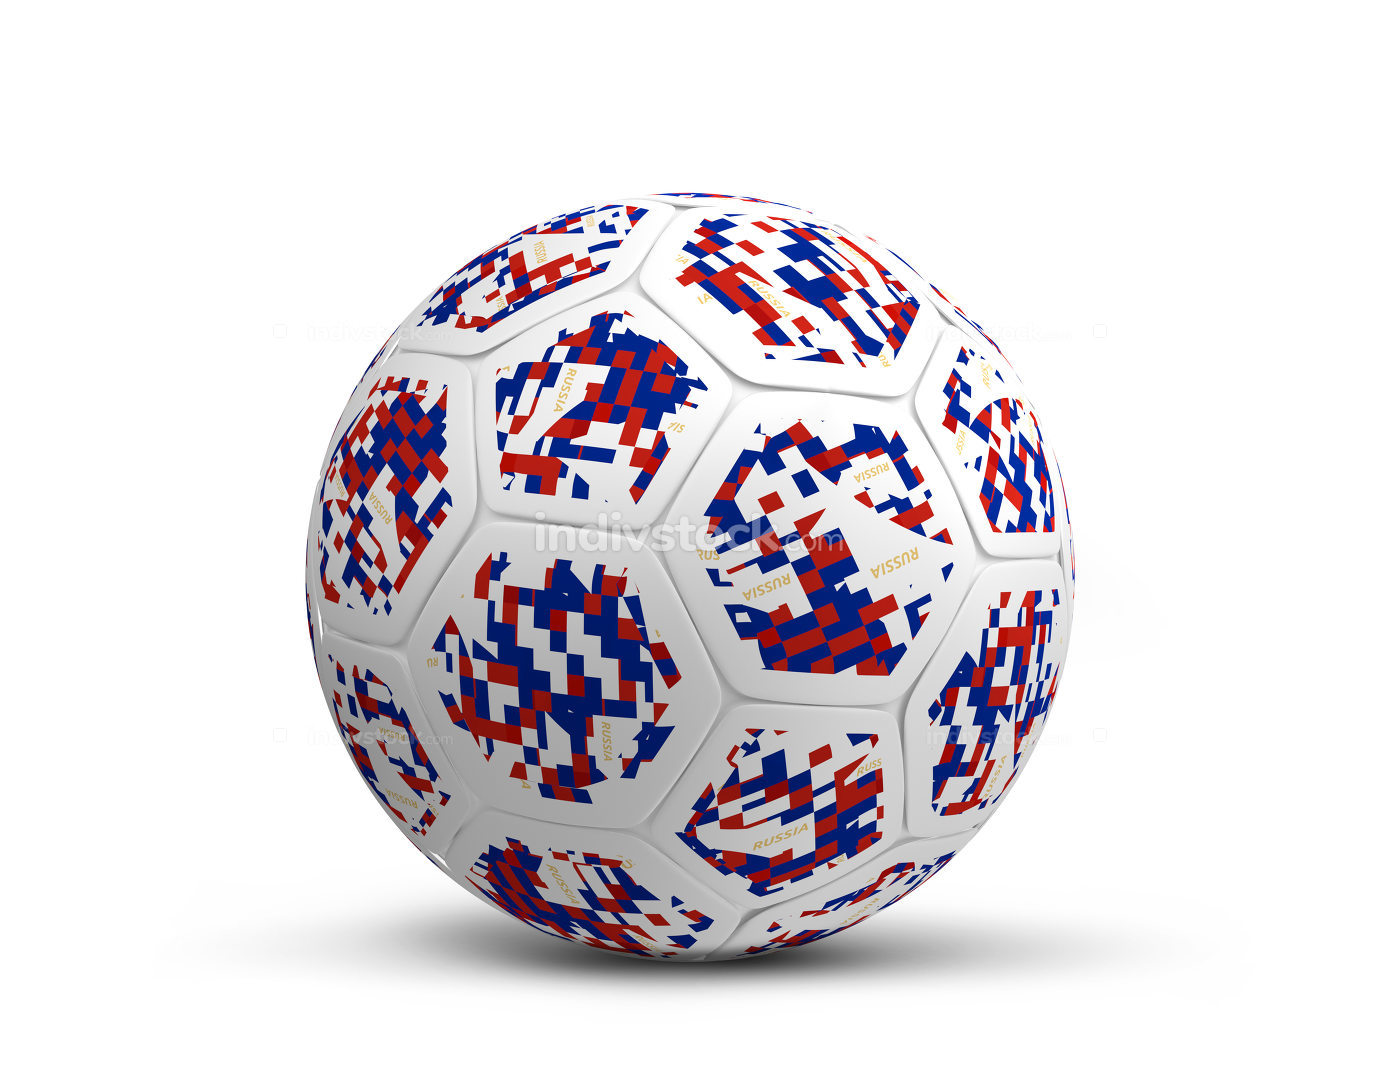 Russia russian color dsign soccer football ball design 3d render